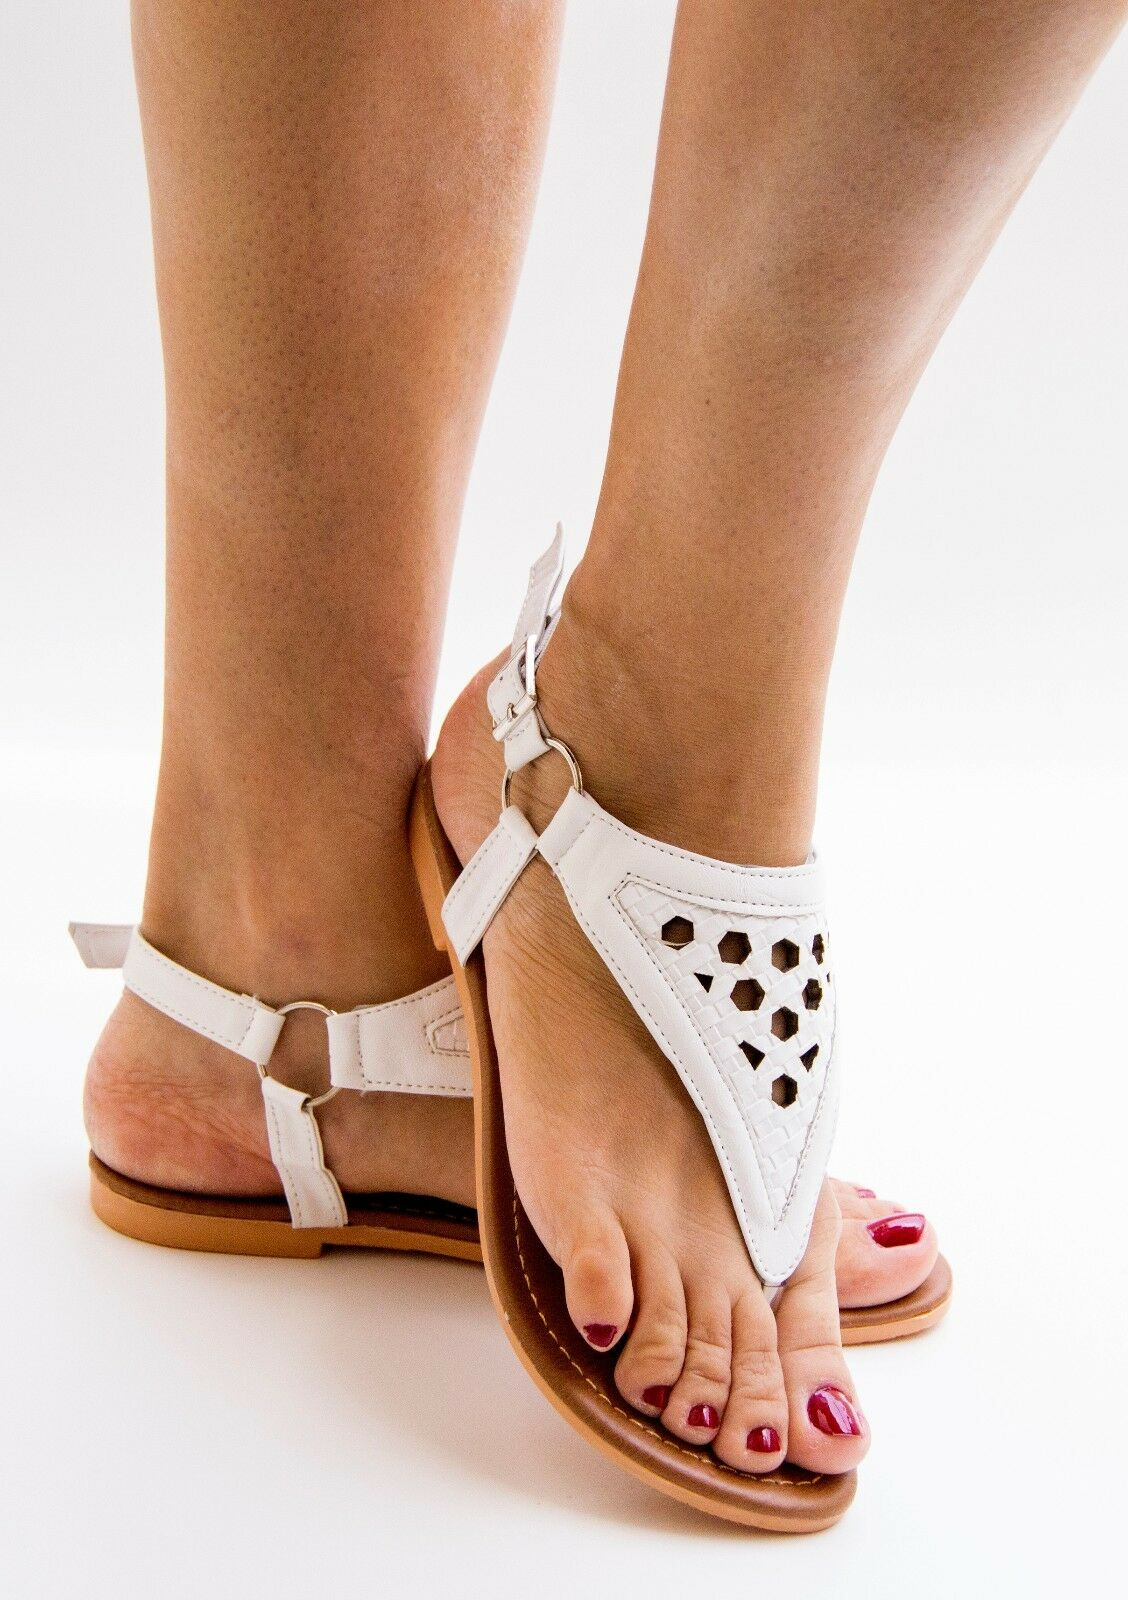 Women's Gladiator Buckle Style Ankle Strap Thong Flip Flops Style Buckle Flats Slingback c4580b